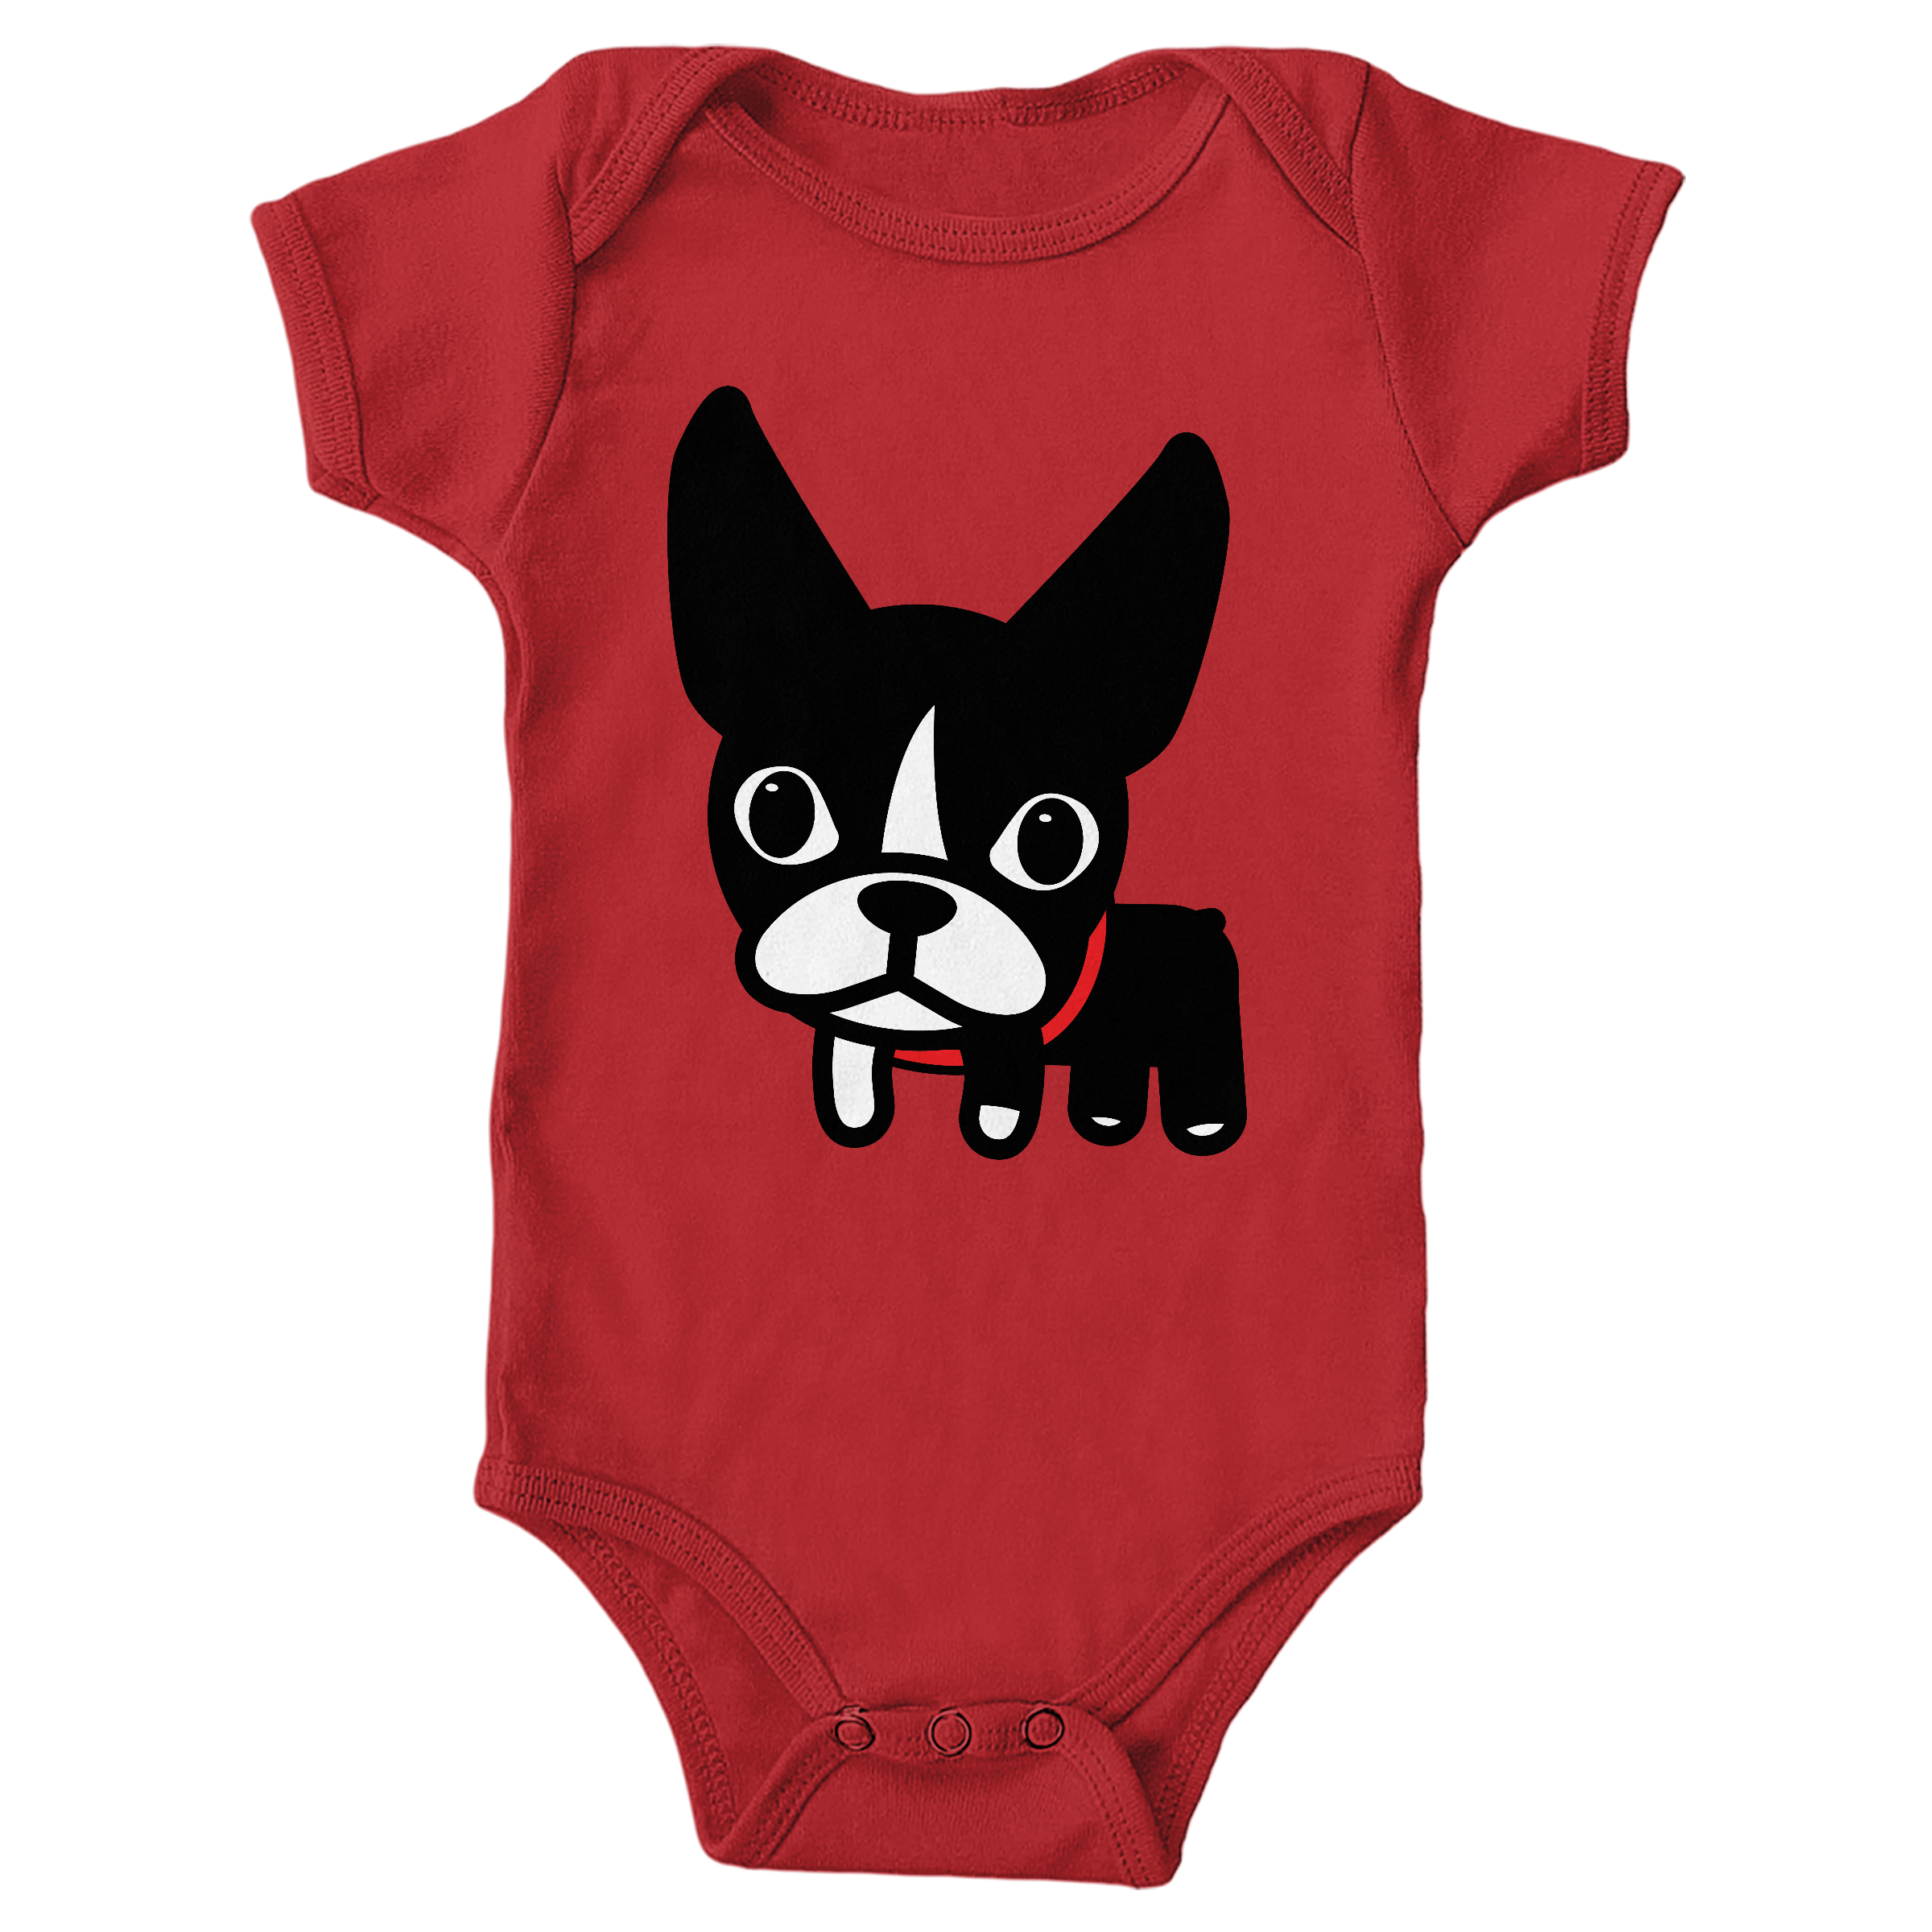 Just Luna Red (Onesie)